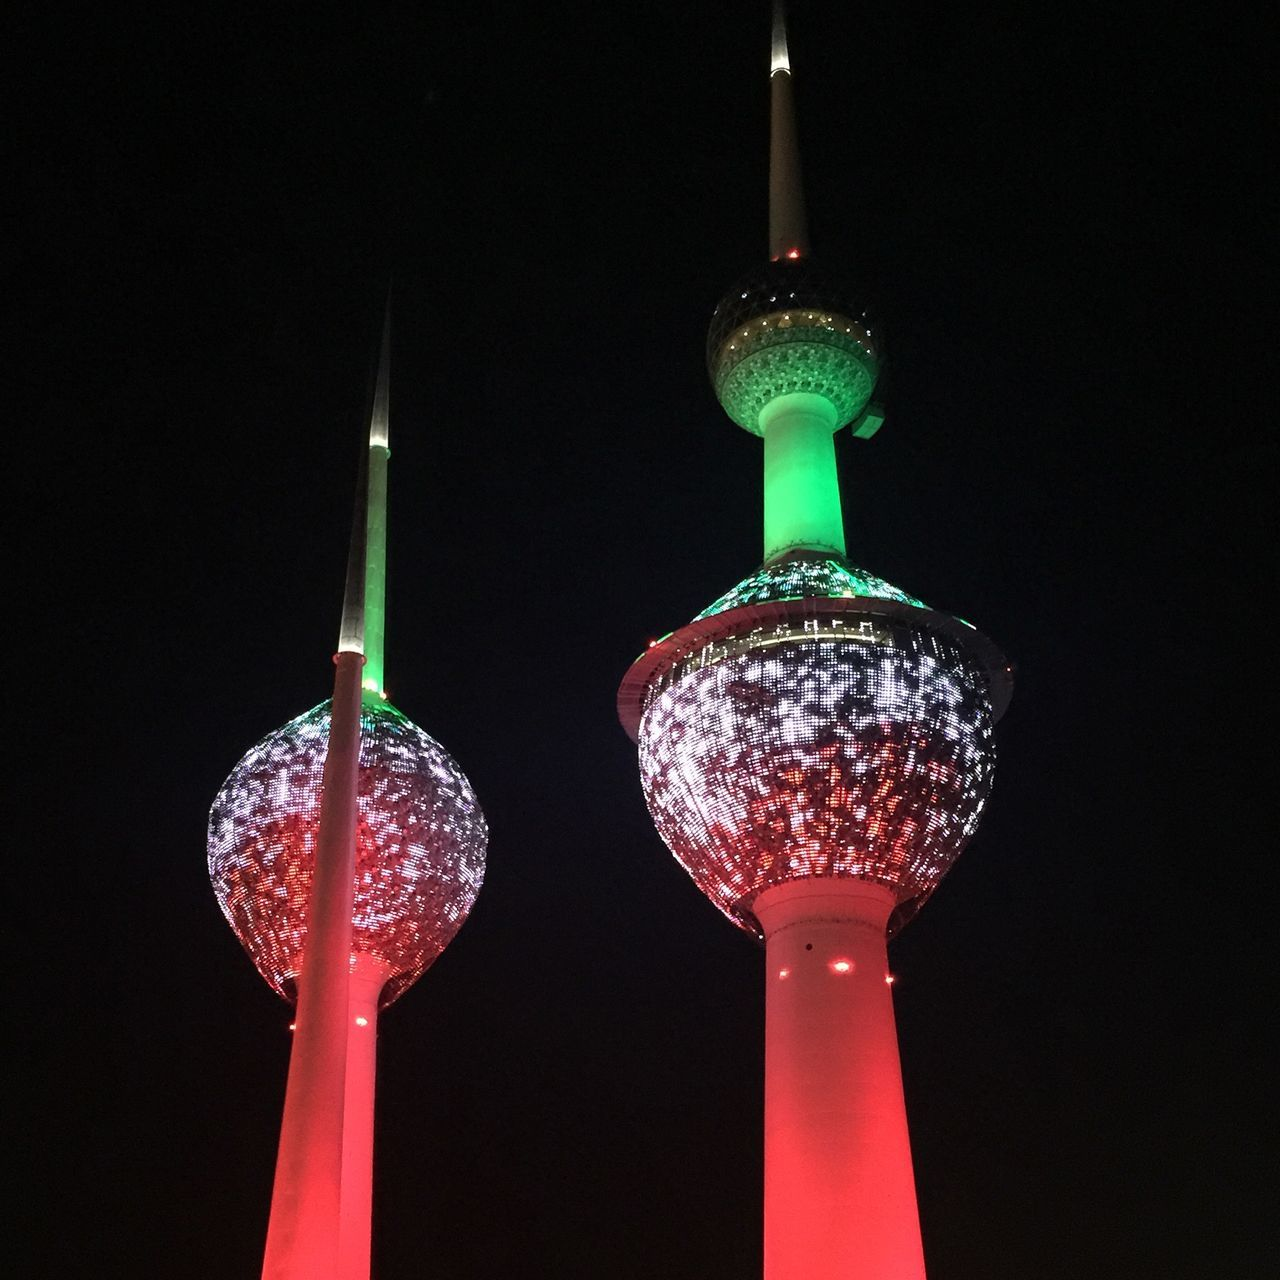 Kuwait Towers Glowing Shiny Illuminated Inspiration Light Effect Travel Destinations Night Photography HuaweiP9